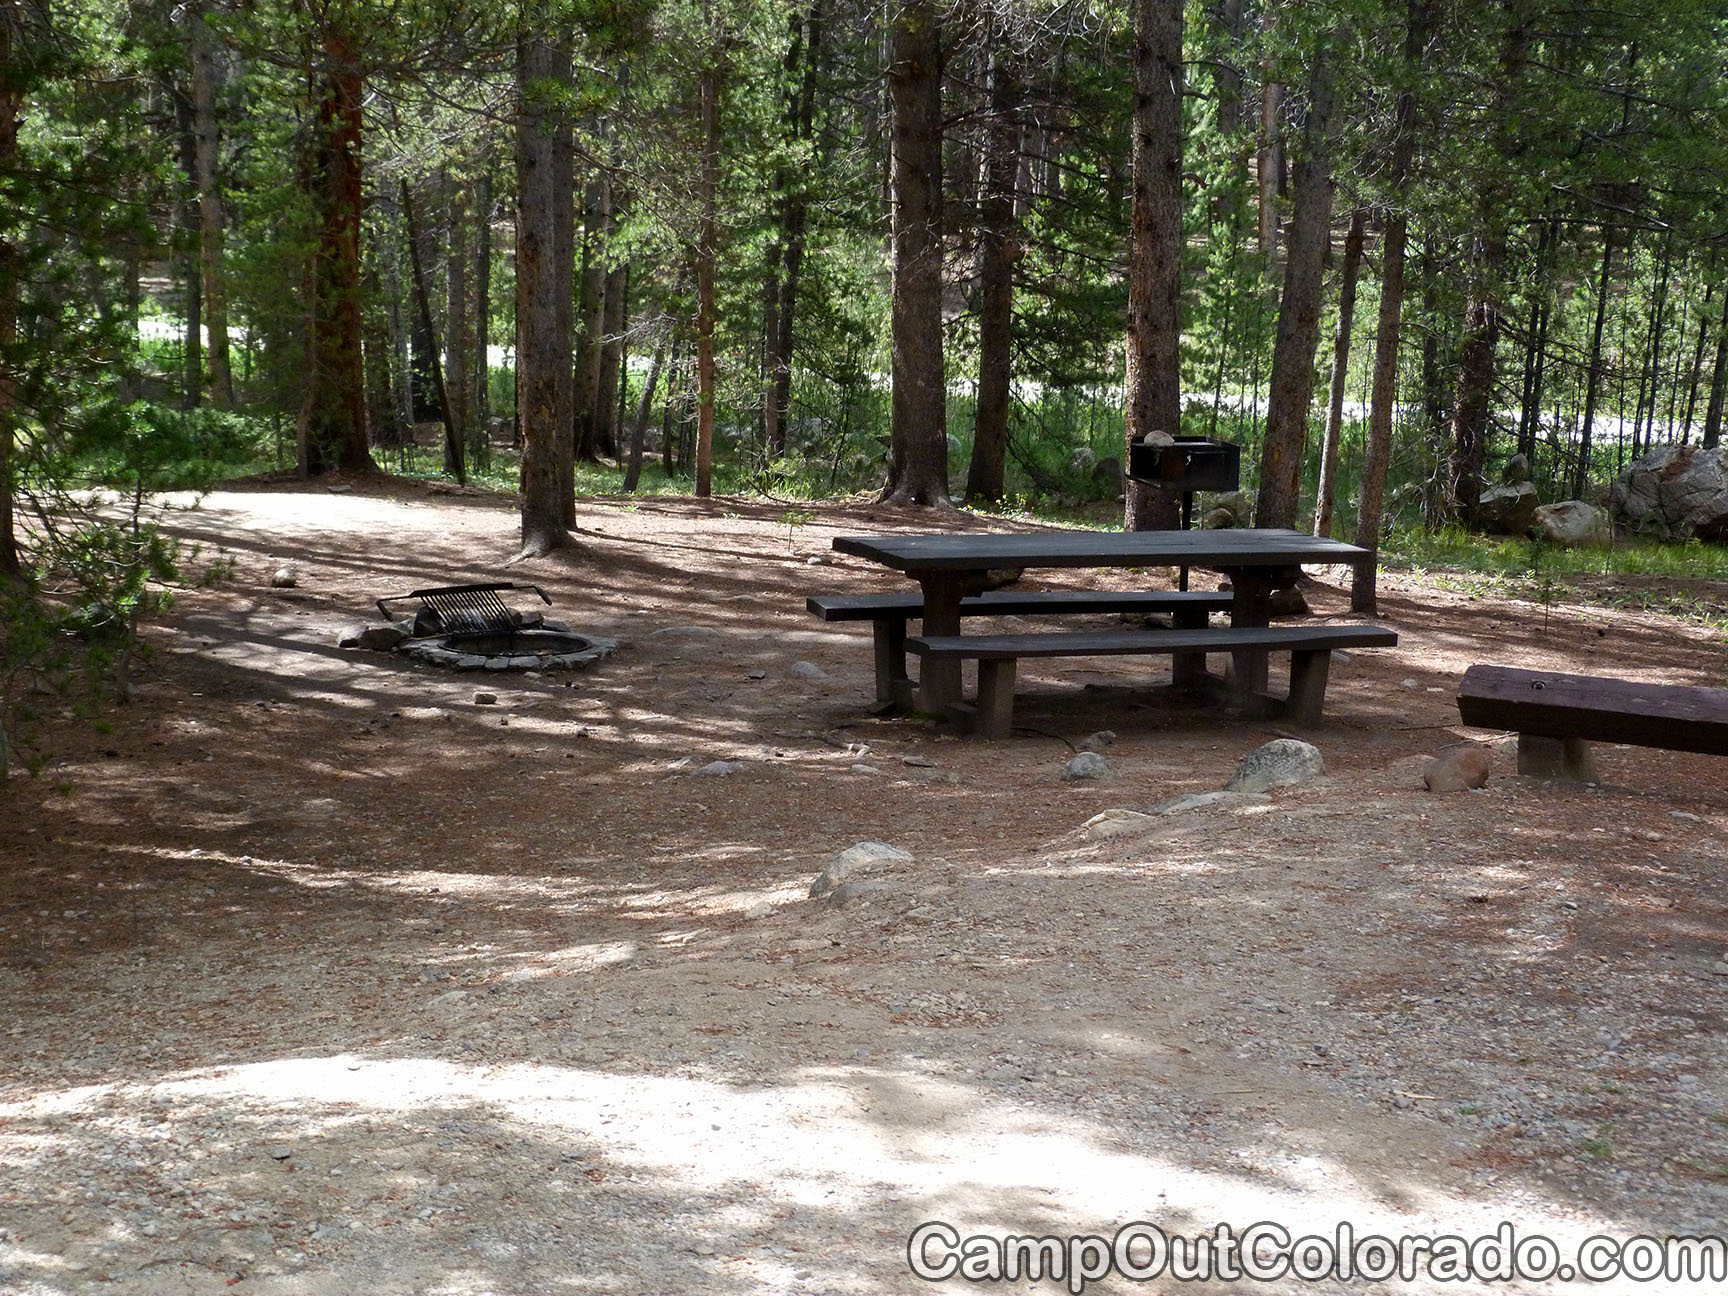 Camp-out-colorado-silver-dollar-turquoise-bbs